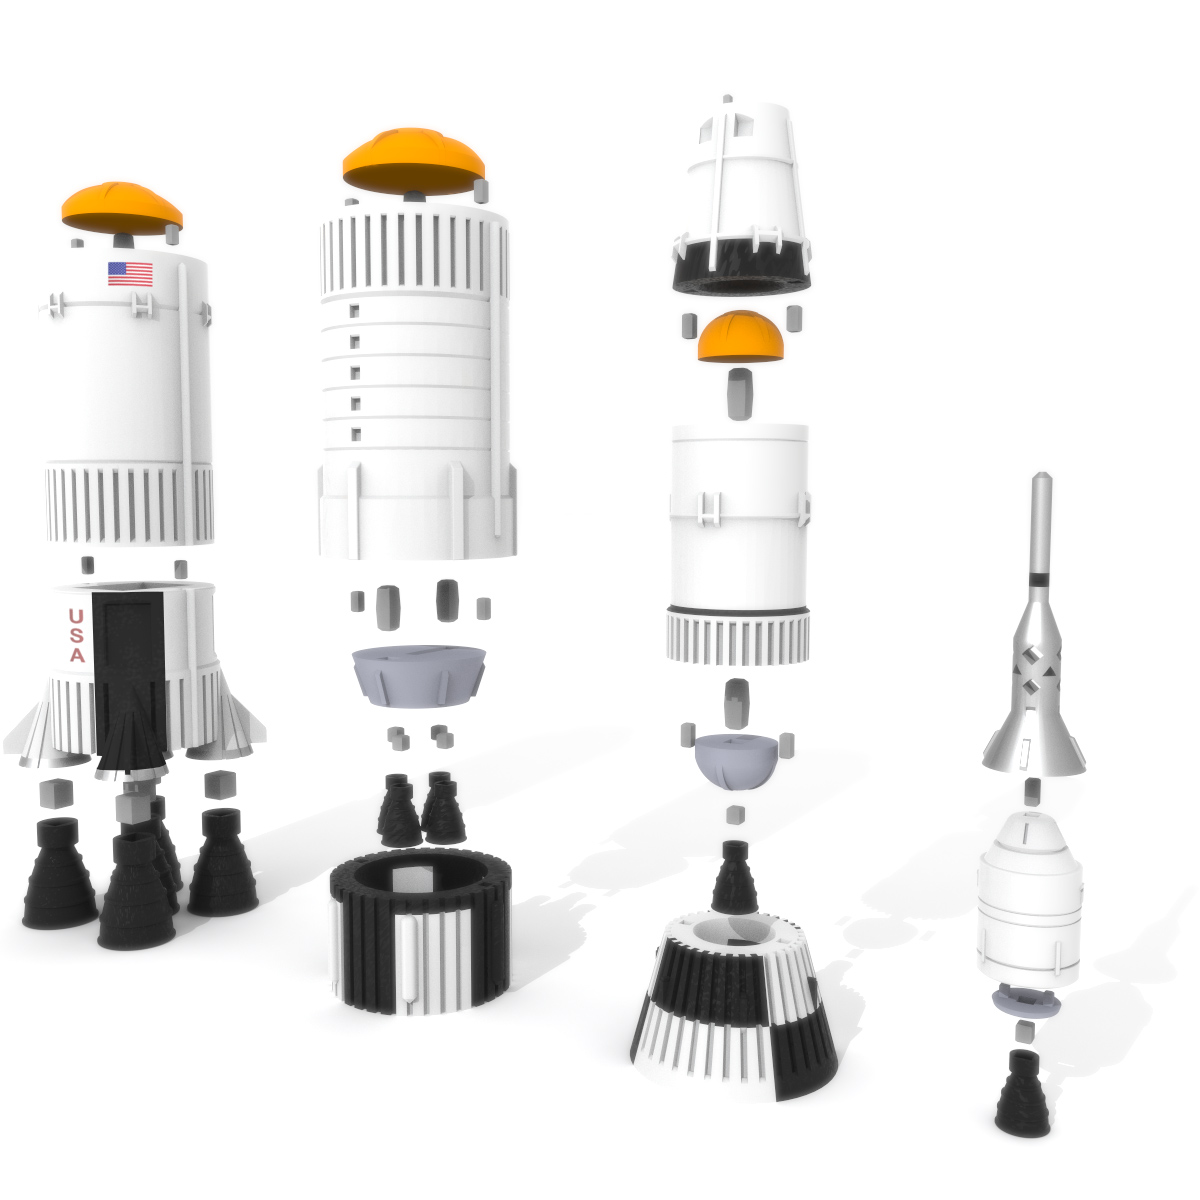 Saturn V Rocket, 3D Printer Models